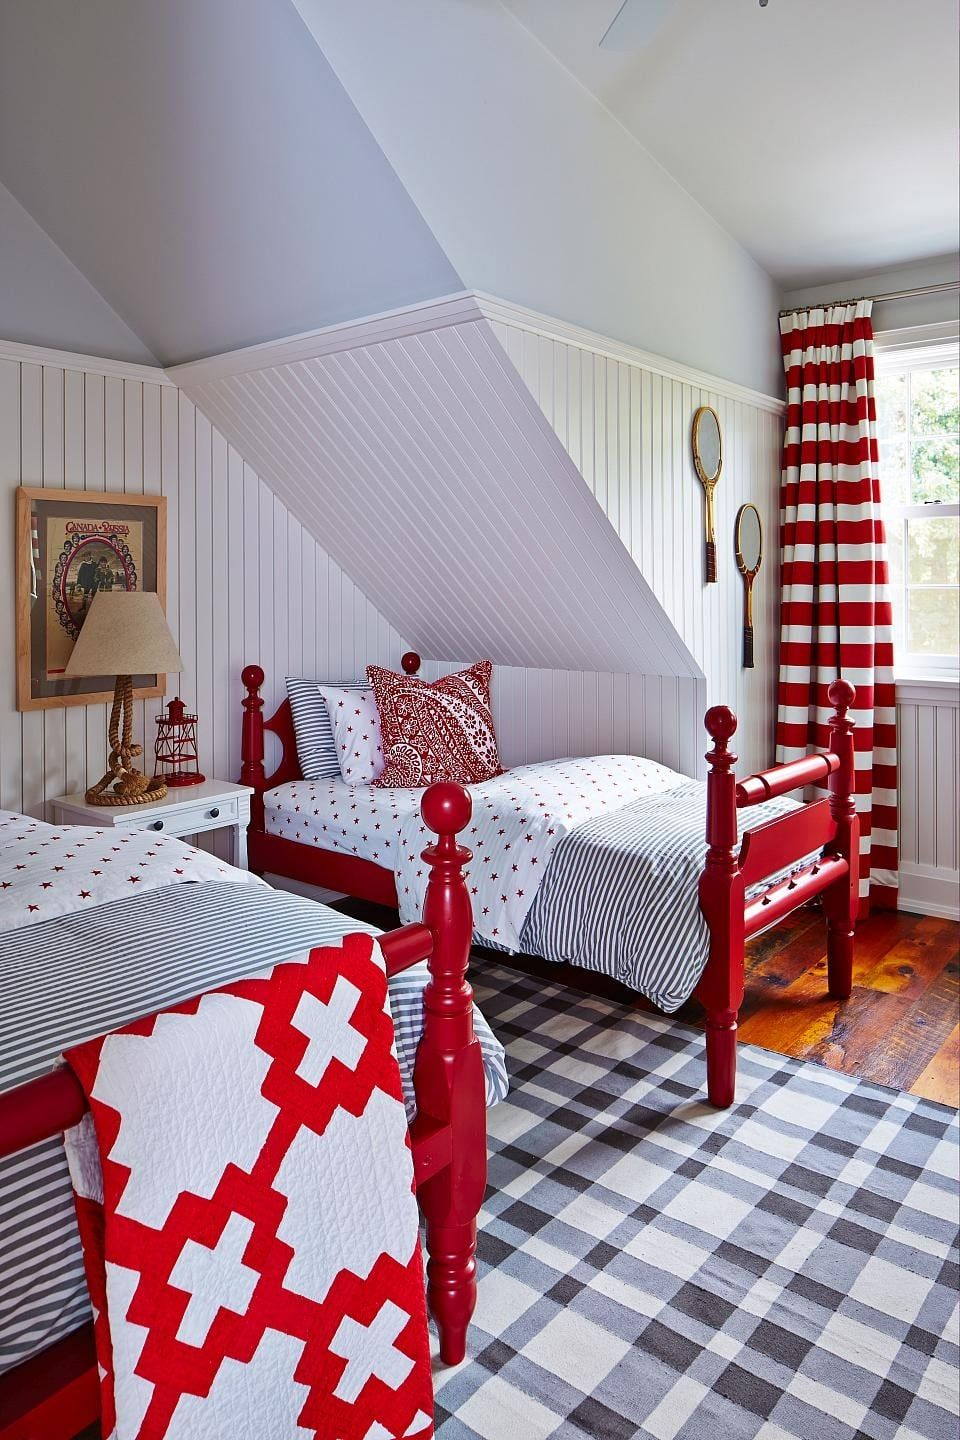 Family Friendly Beach House Attic bedroom